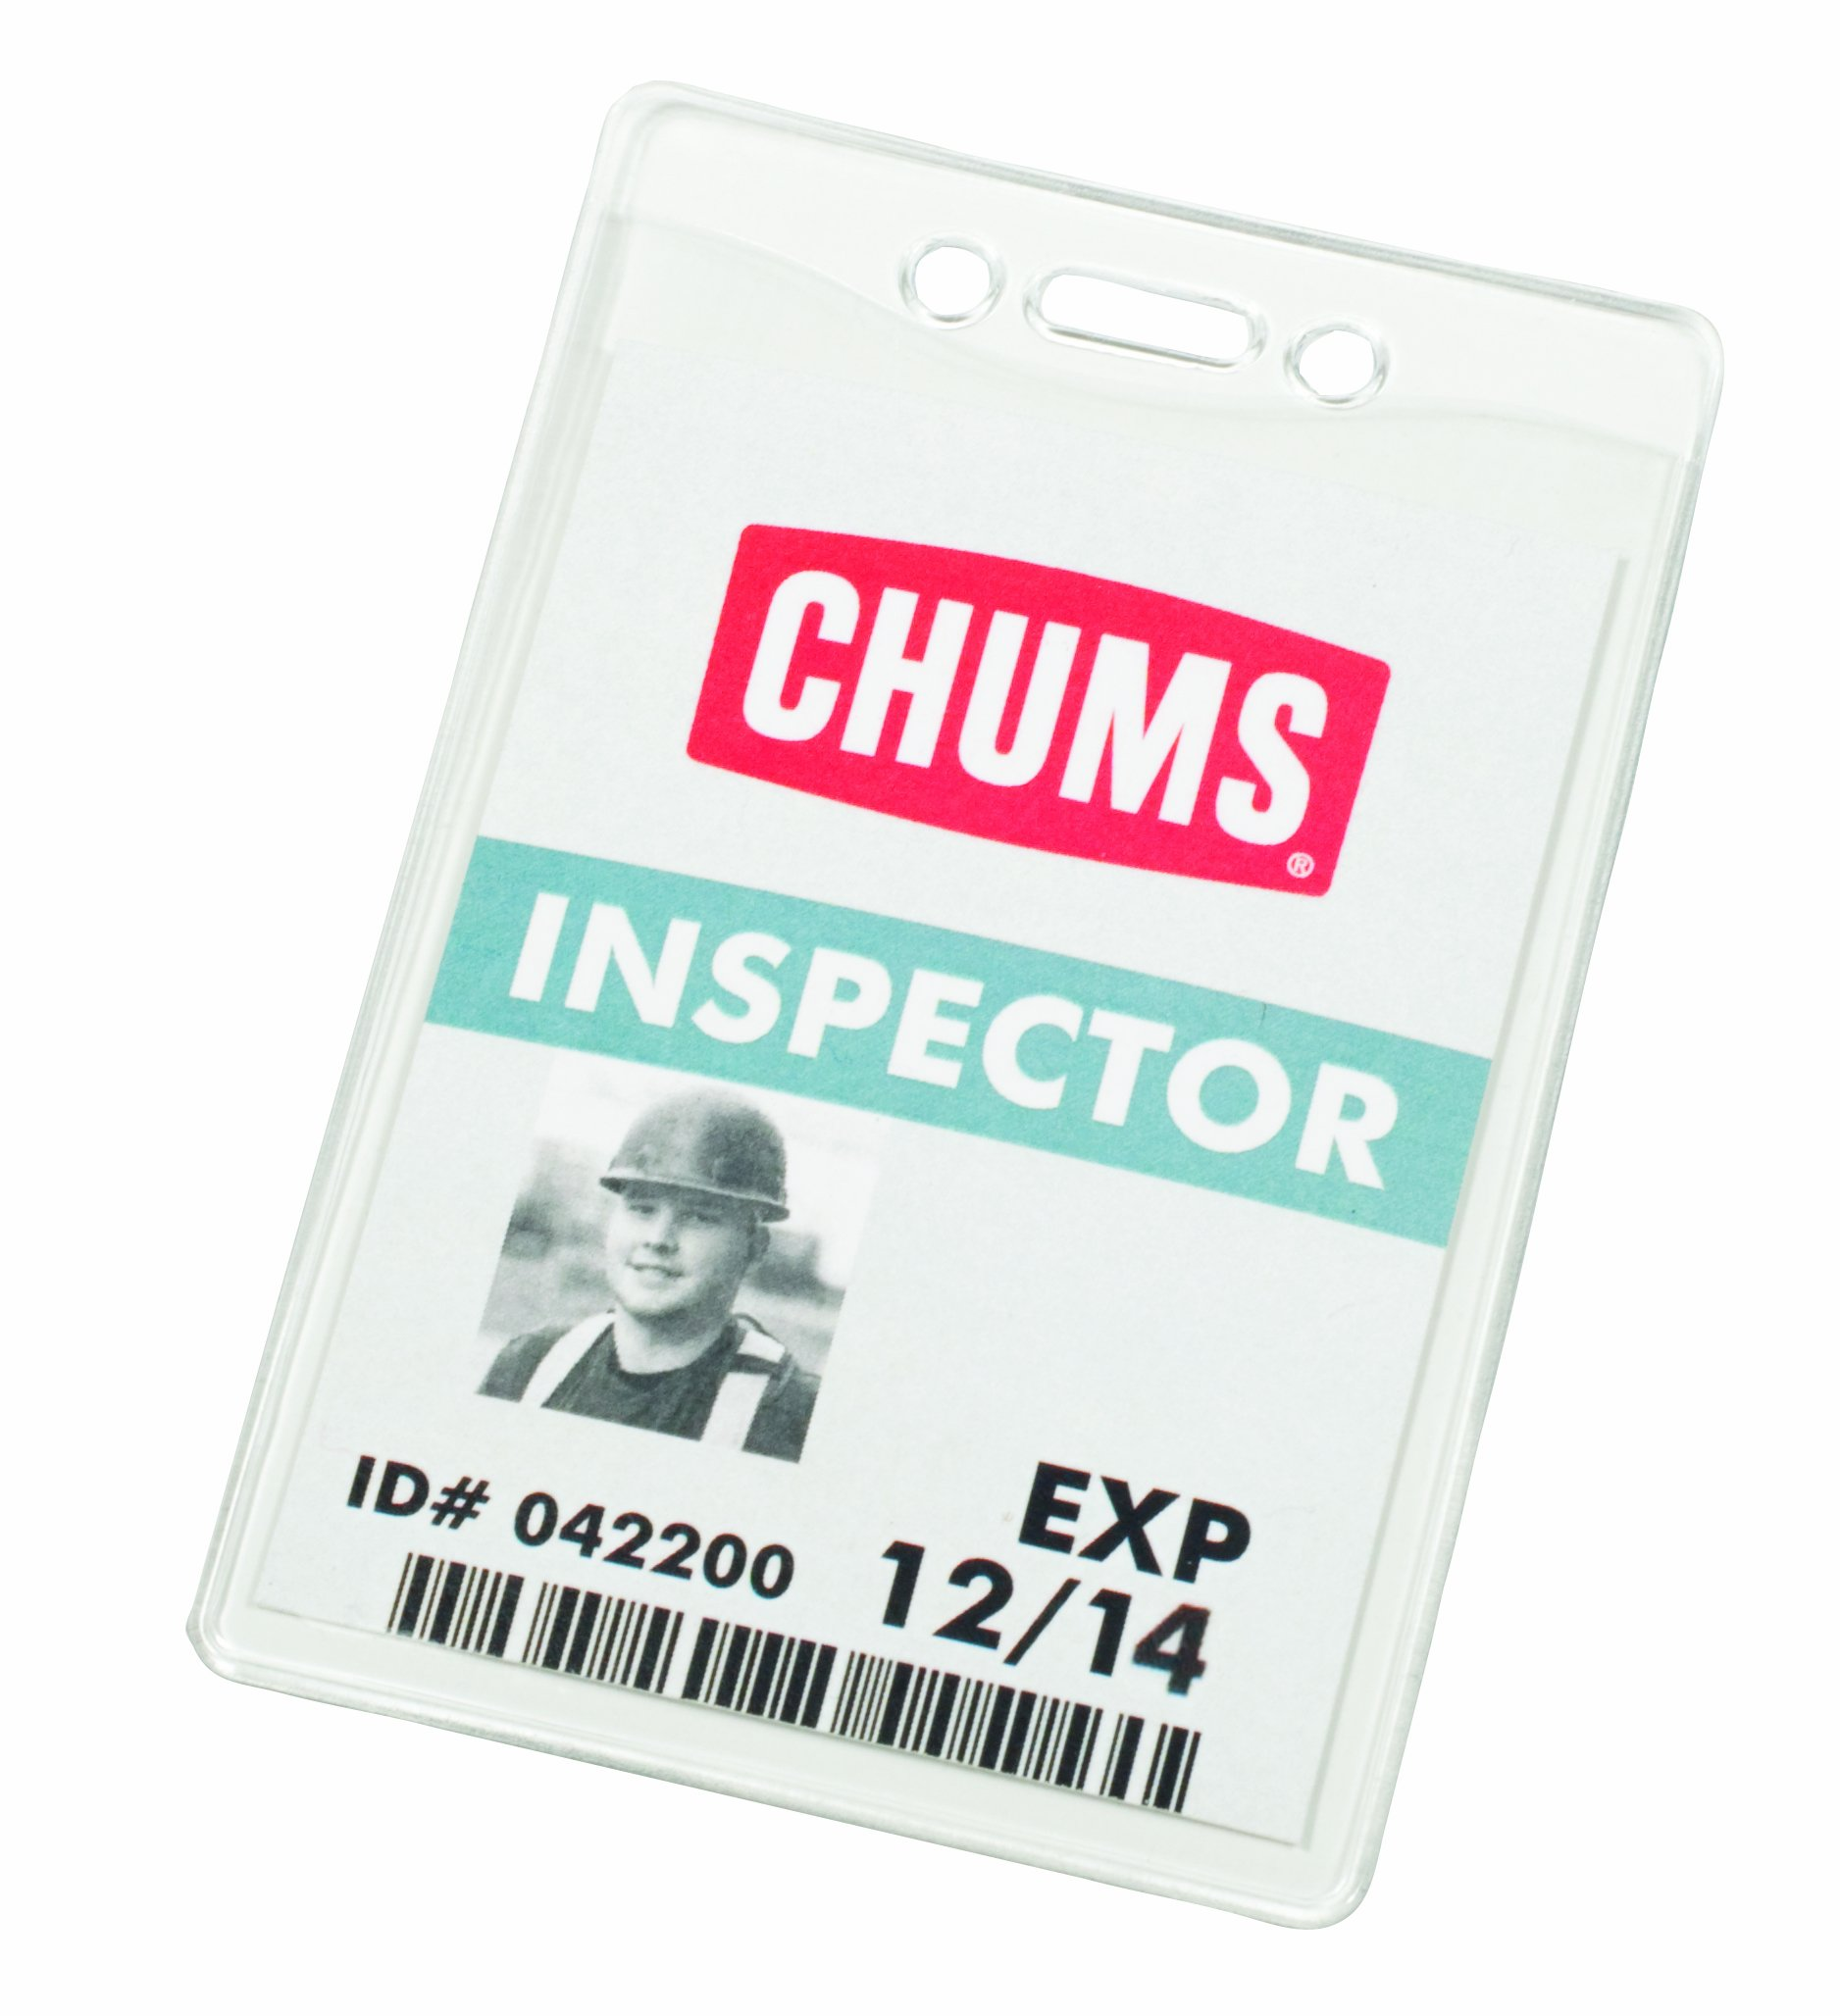 Chums Safety 30032 Heavy Duty Vinyl Sleeve, 2-3/4'' Width x 4'' Height, For Vertically Oriented Security Passes and Ids (Pack of 10)